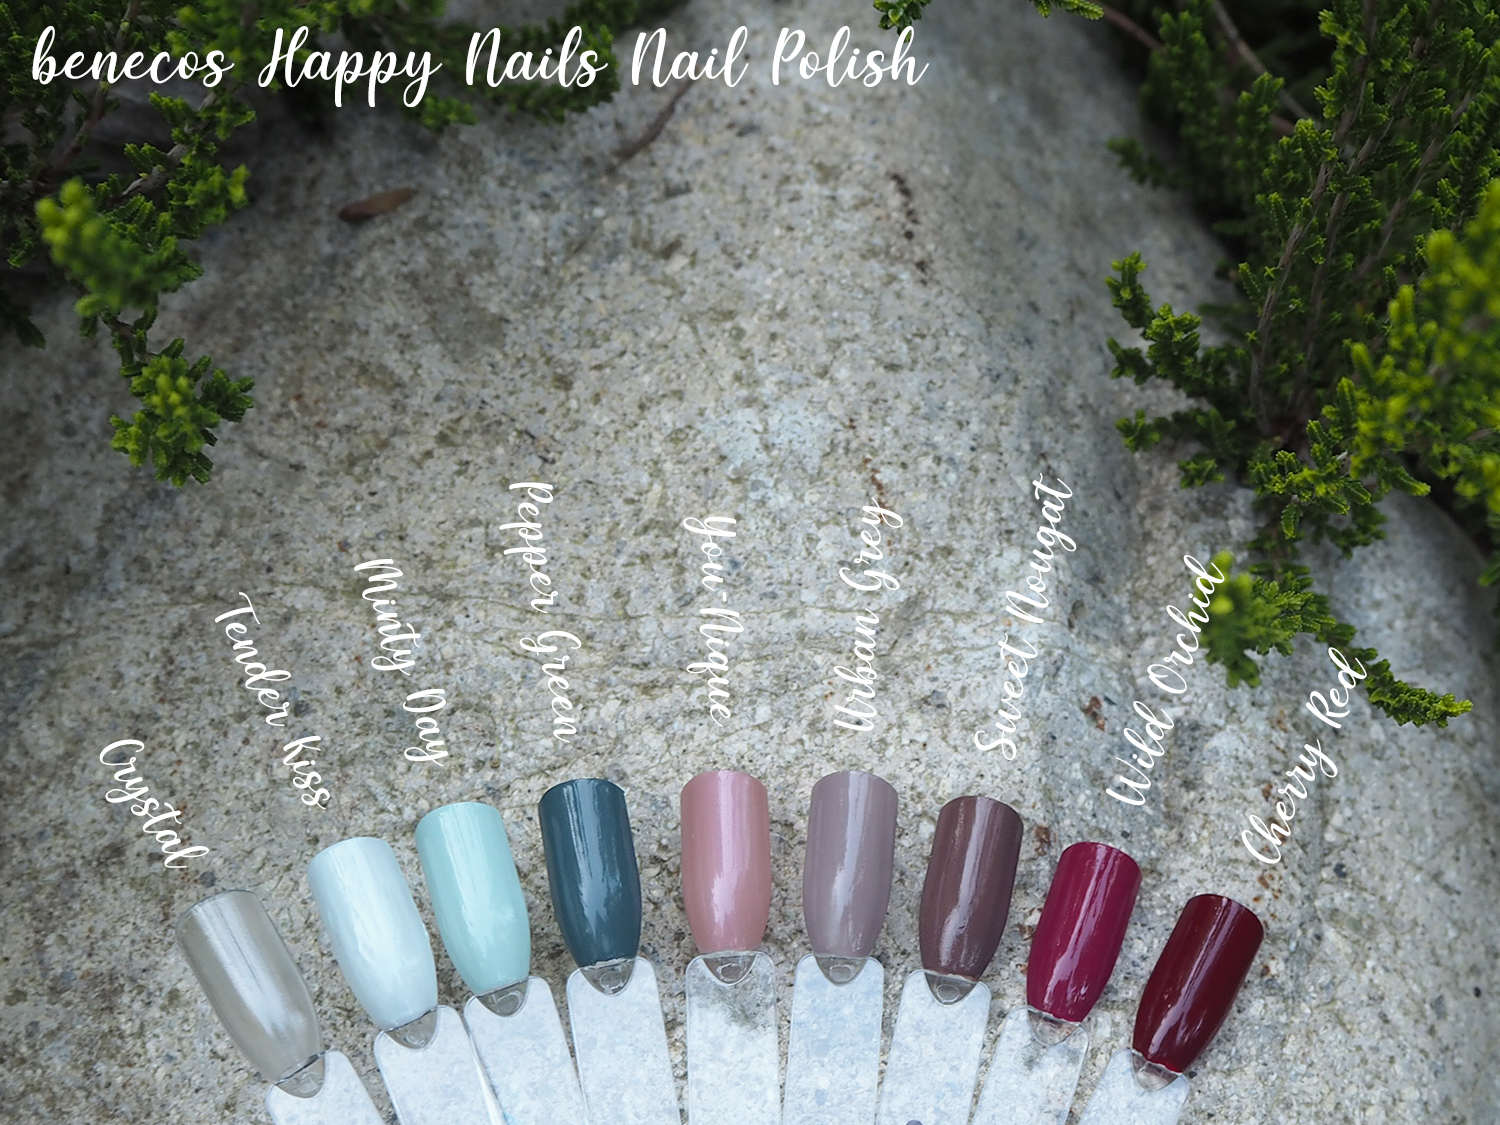 benecos Happy Nails Crystal, Tender Kiss, Minty Day, Pepper Green, You-Nique, Urban Grey, Sweet Nougat, Wild Orchid und Cherry Red